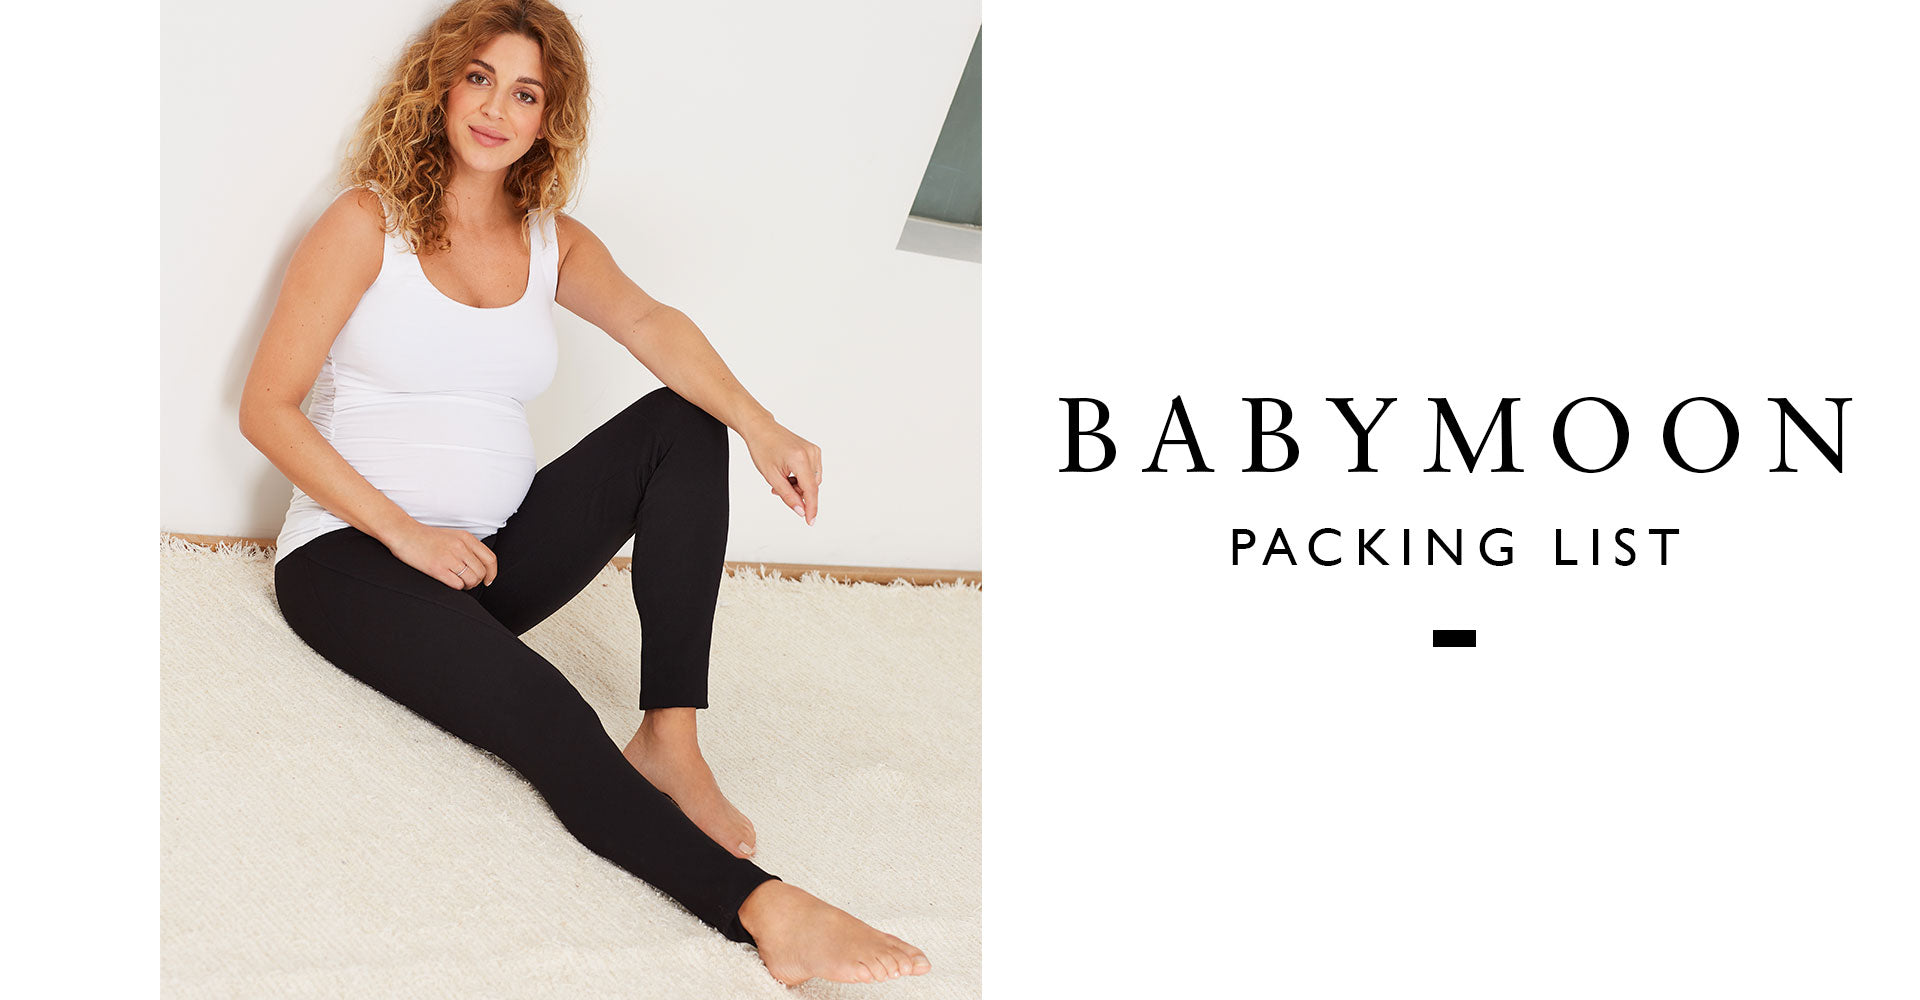 Babymoon packing list